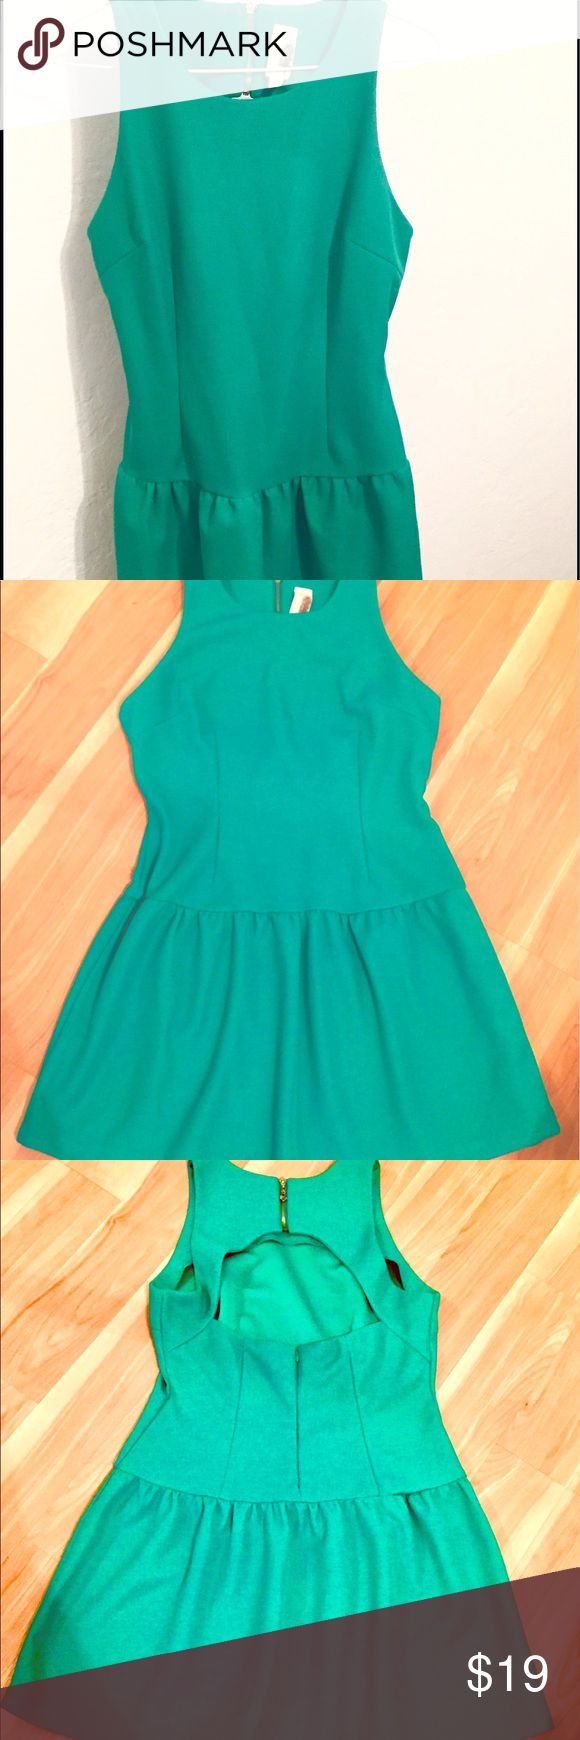 Francesca's Collections Kelly Green Mini Dress - L Very cute Kelly Green mini dress from Francesca's Collections.  Hits about mid thigh on me and I am 5'2.  Very nice material not stretchy and has a cut cut out and dual zipper look.  Size large and only worn a few times. Francesca's Collections Dresses Mini